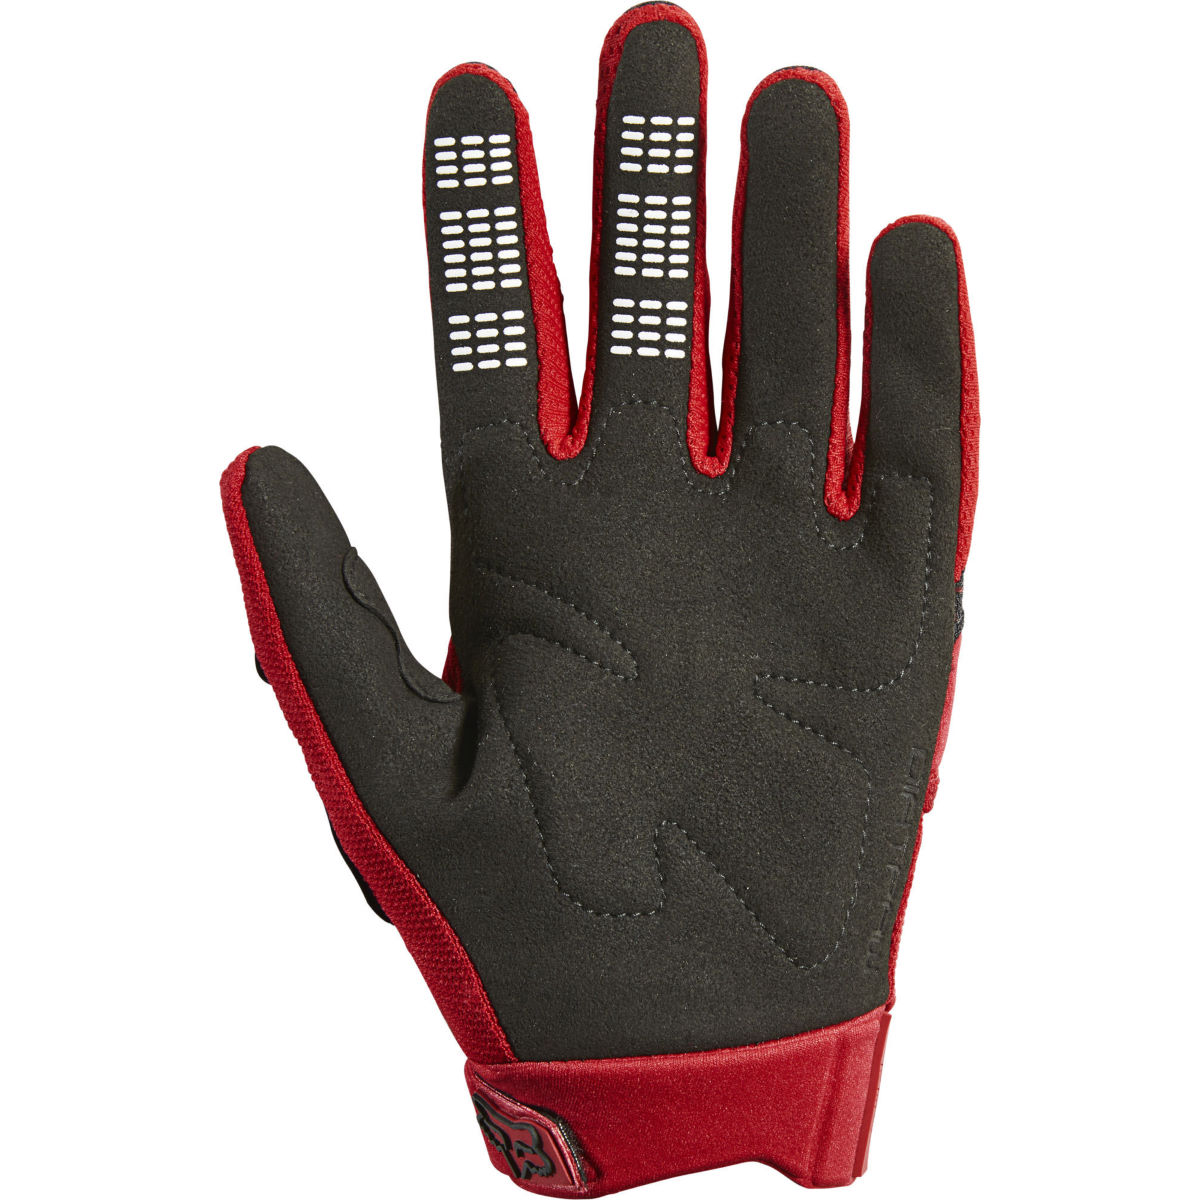 Fox Racing Youth Dirtpaw Race Cycling Gloves - Y-xs Flame Red  Gloves